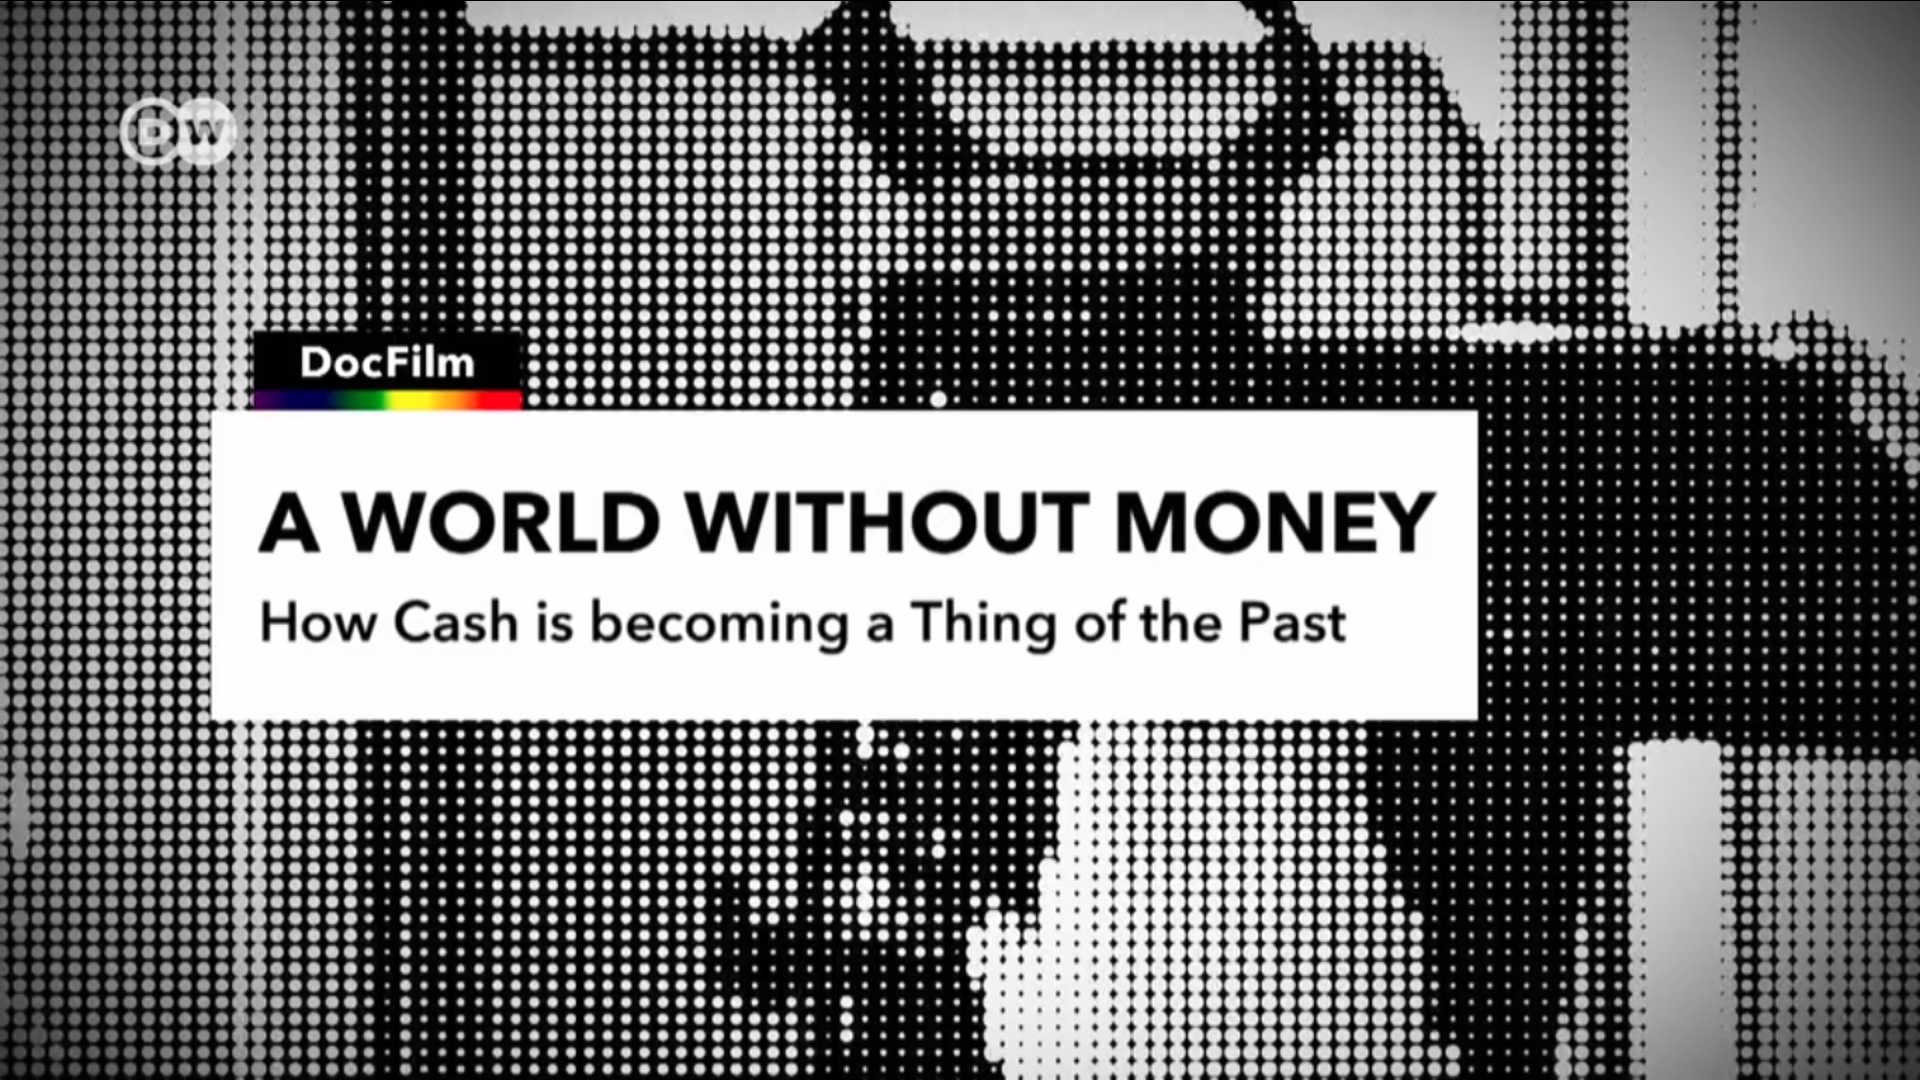 Watch Full Movie - How Cash is Becoming a Thing of the Past